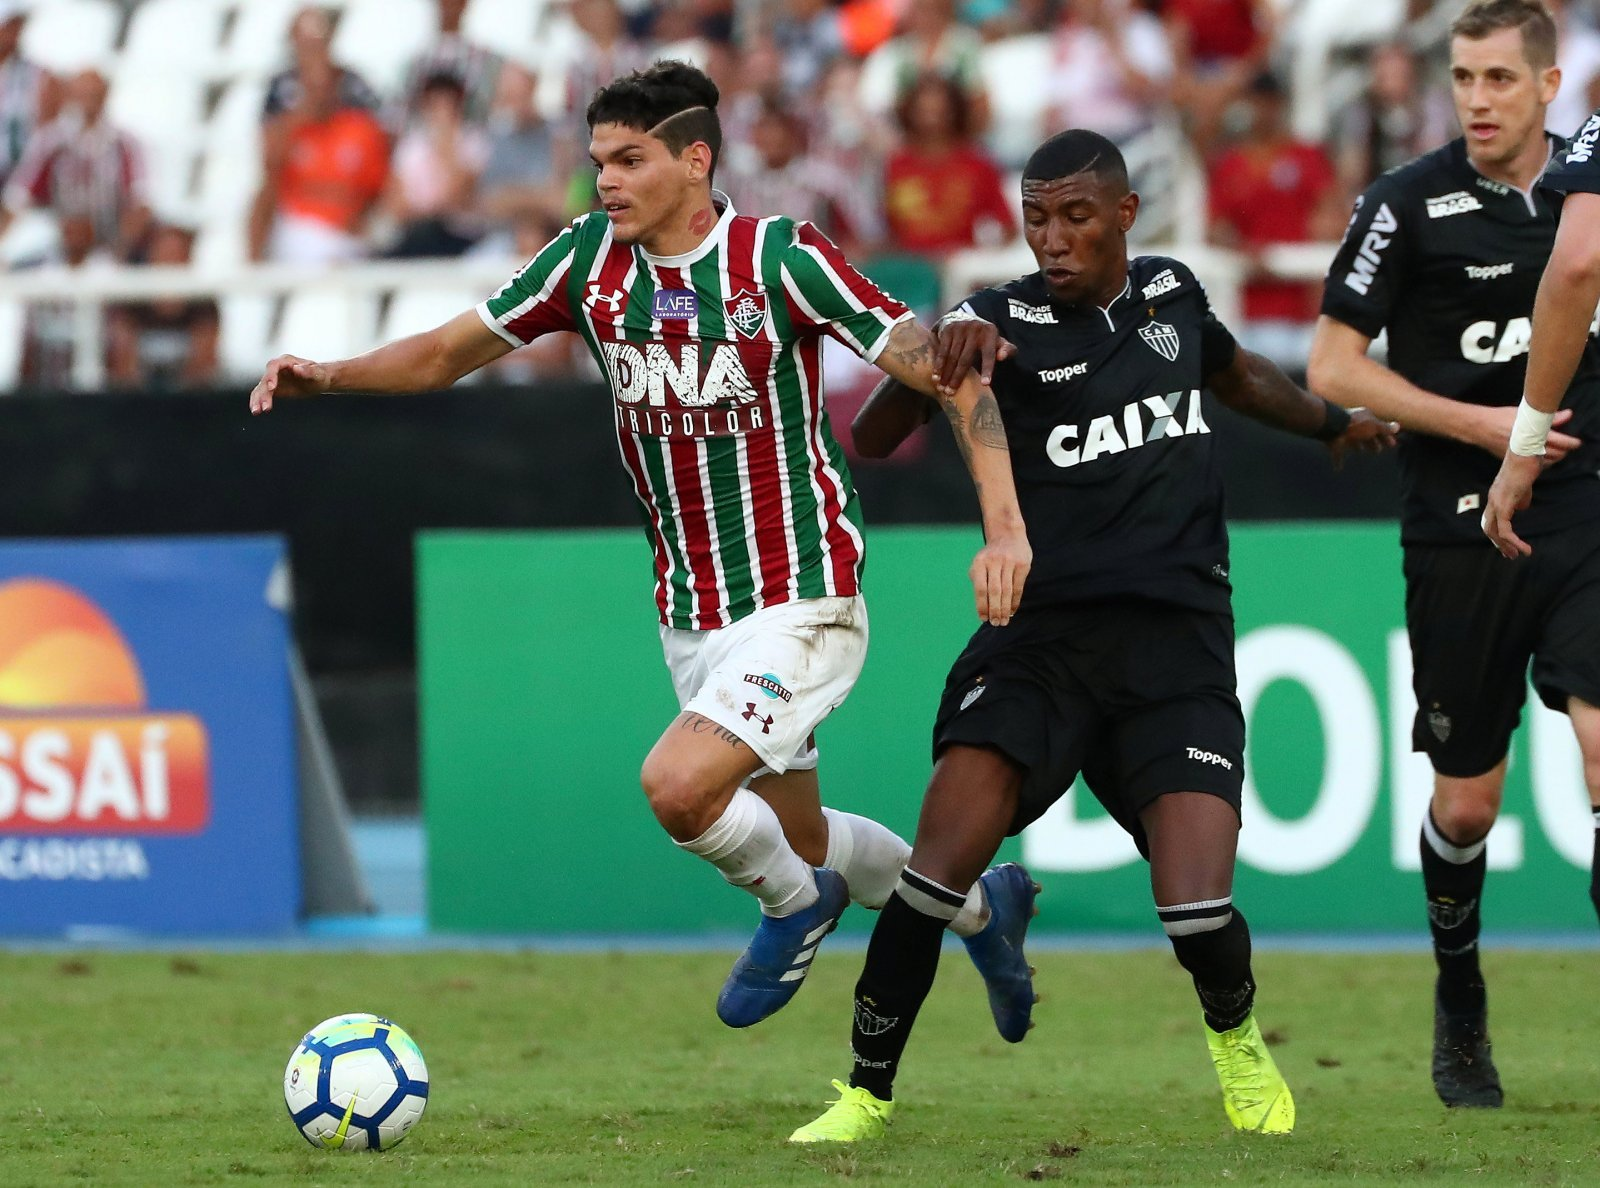 Arsenal should pursue young Emerson as right-back solution